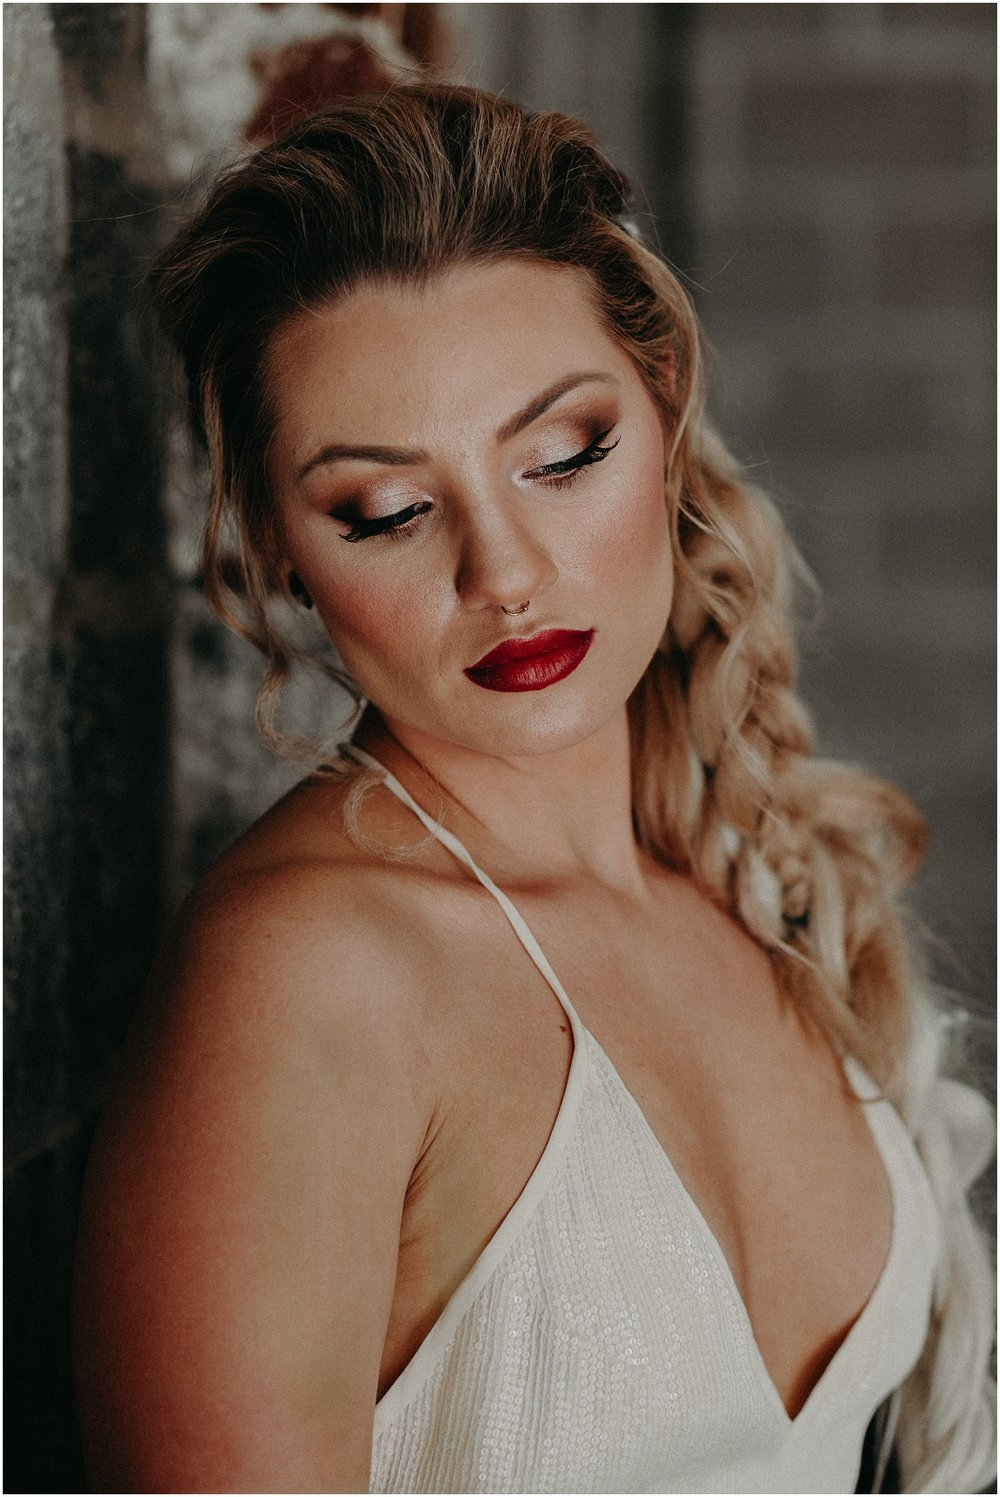 styled shoot-bridal portraits-portraits-bride-rock and roll-industrial-urban-wedding-inspiration-nj-new jersey-nyc-new york city-art-diy wedding_0072.jpg